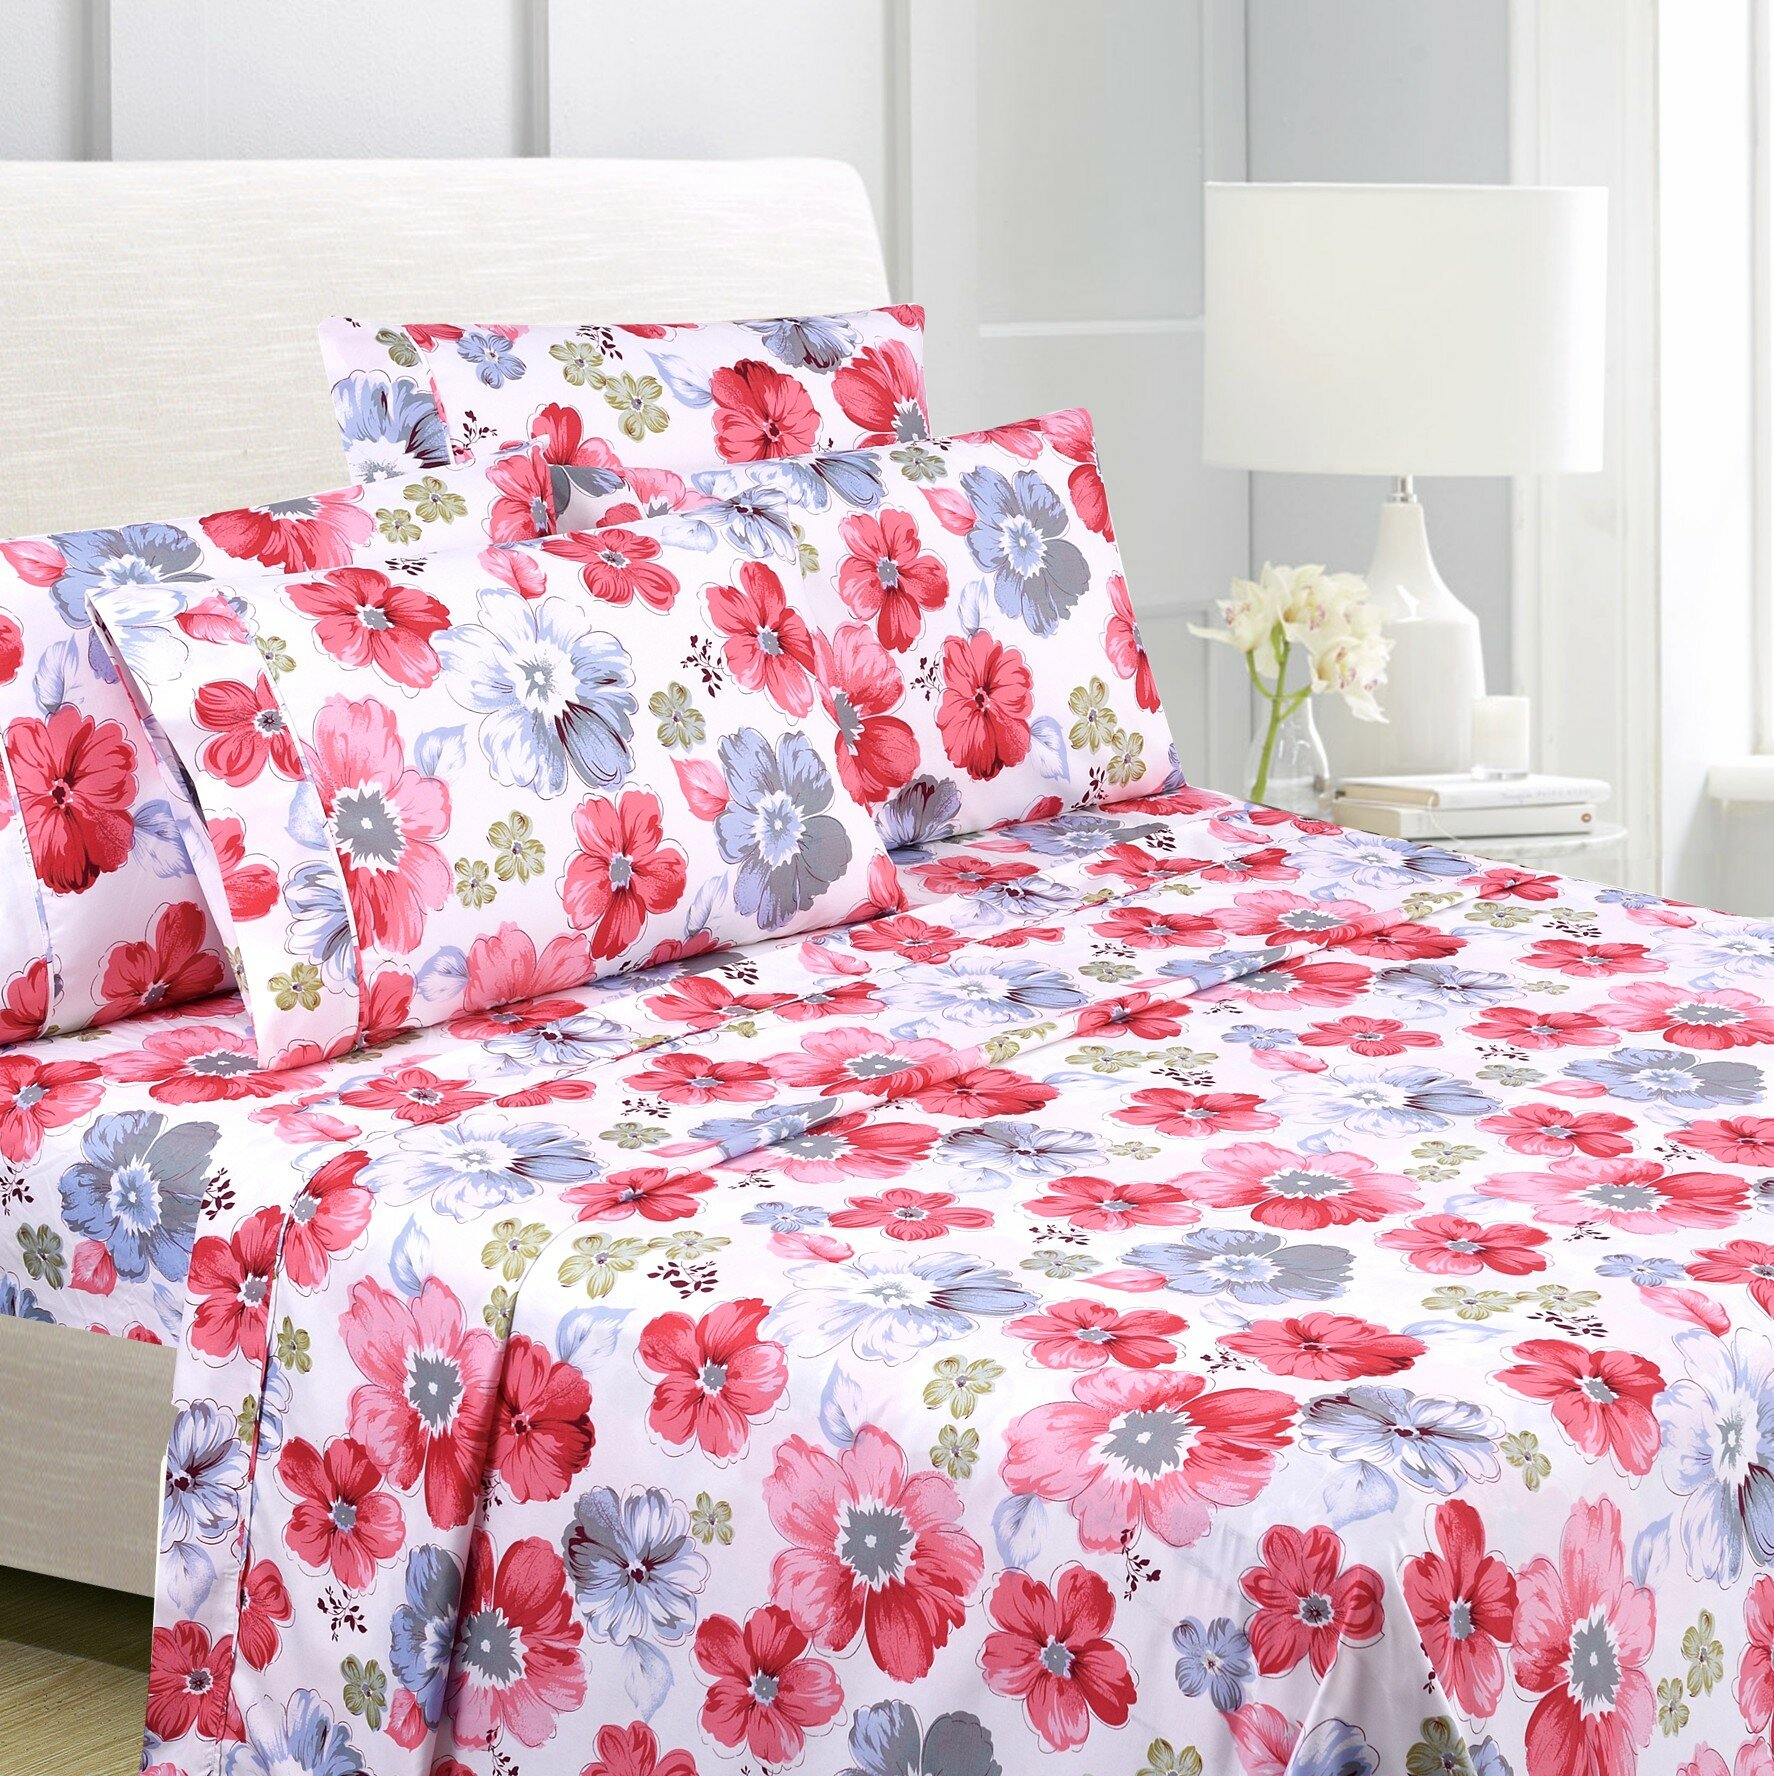 262 With Duvet Cover,Pillow Cases /& Fitted Sheet 3D Effect Bedding Complete Set